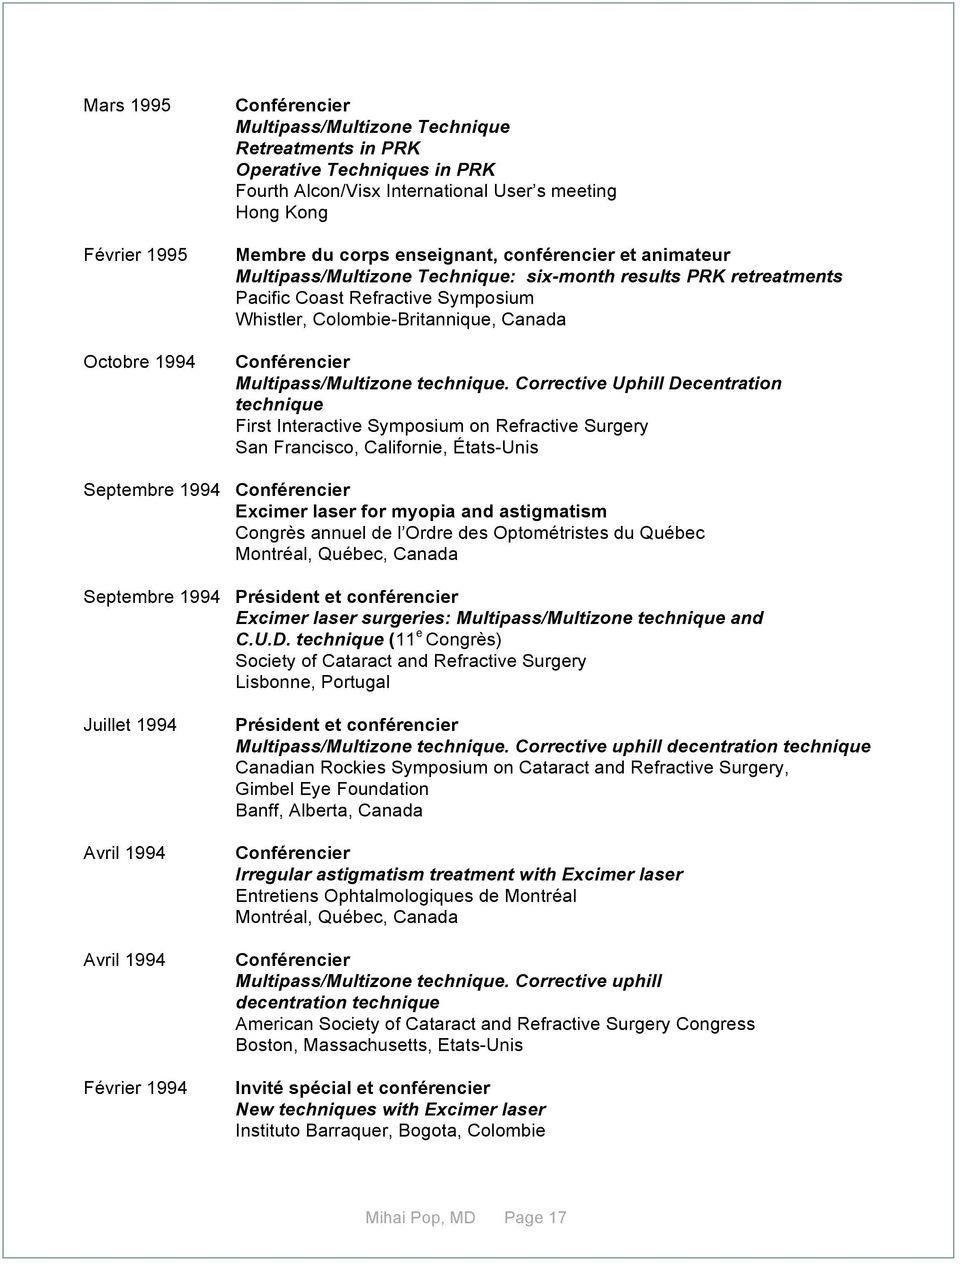 Corrective Uphill Decentration technique First Interactive Symposium on Refractive Surgery San Francisco, Californie, États-Unis Septembre 1994 Excimer laser for myopia and astigmatism Congrès annuel